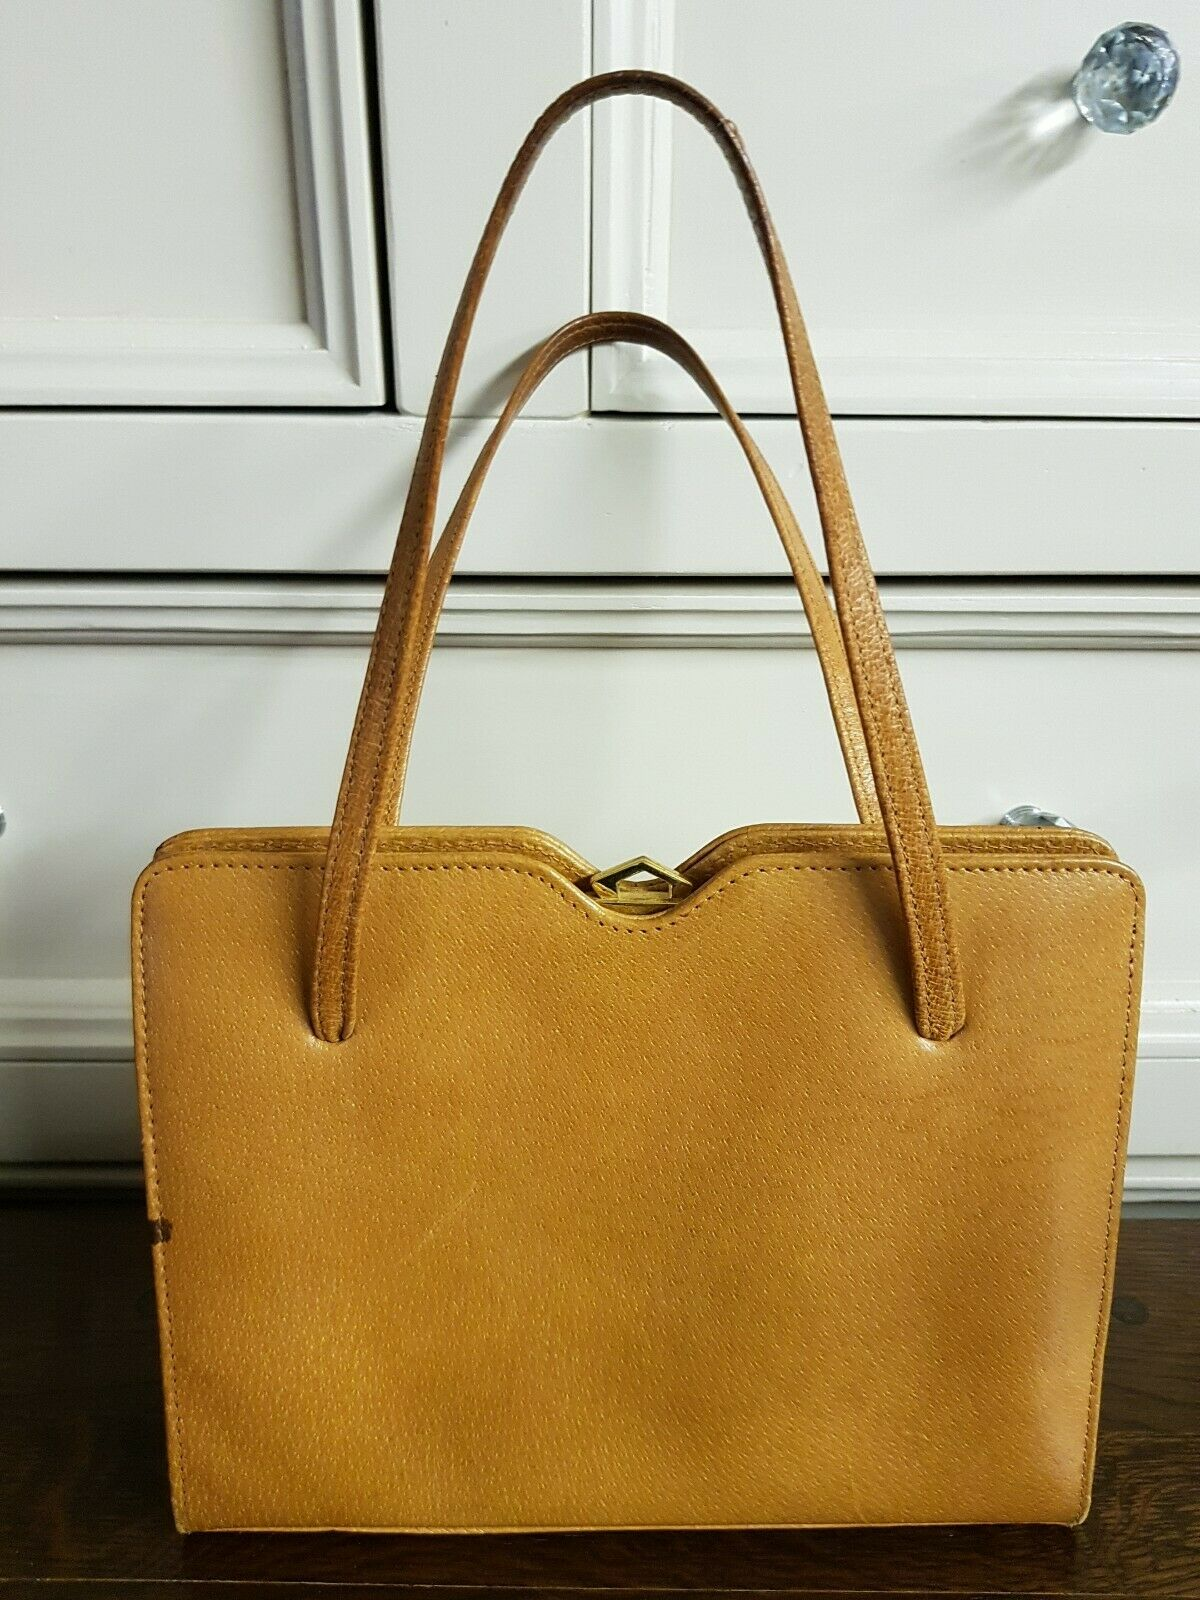 Vintage Tan Leather Handbag by RIVIERA ENGLAND with Mirror and Purse